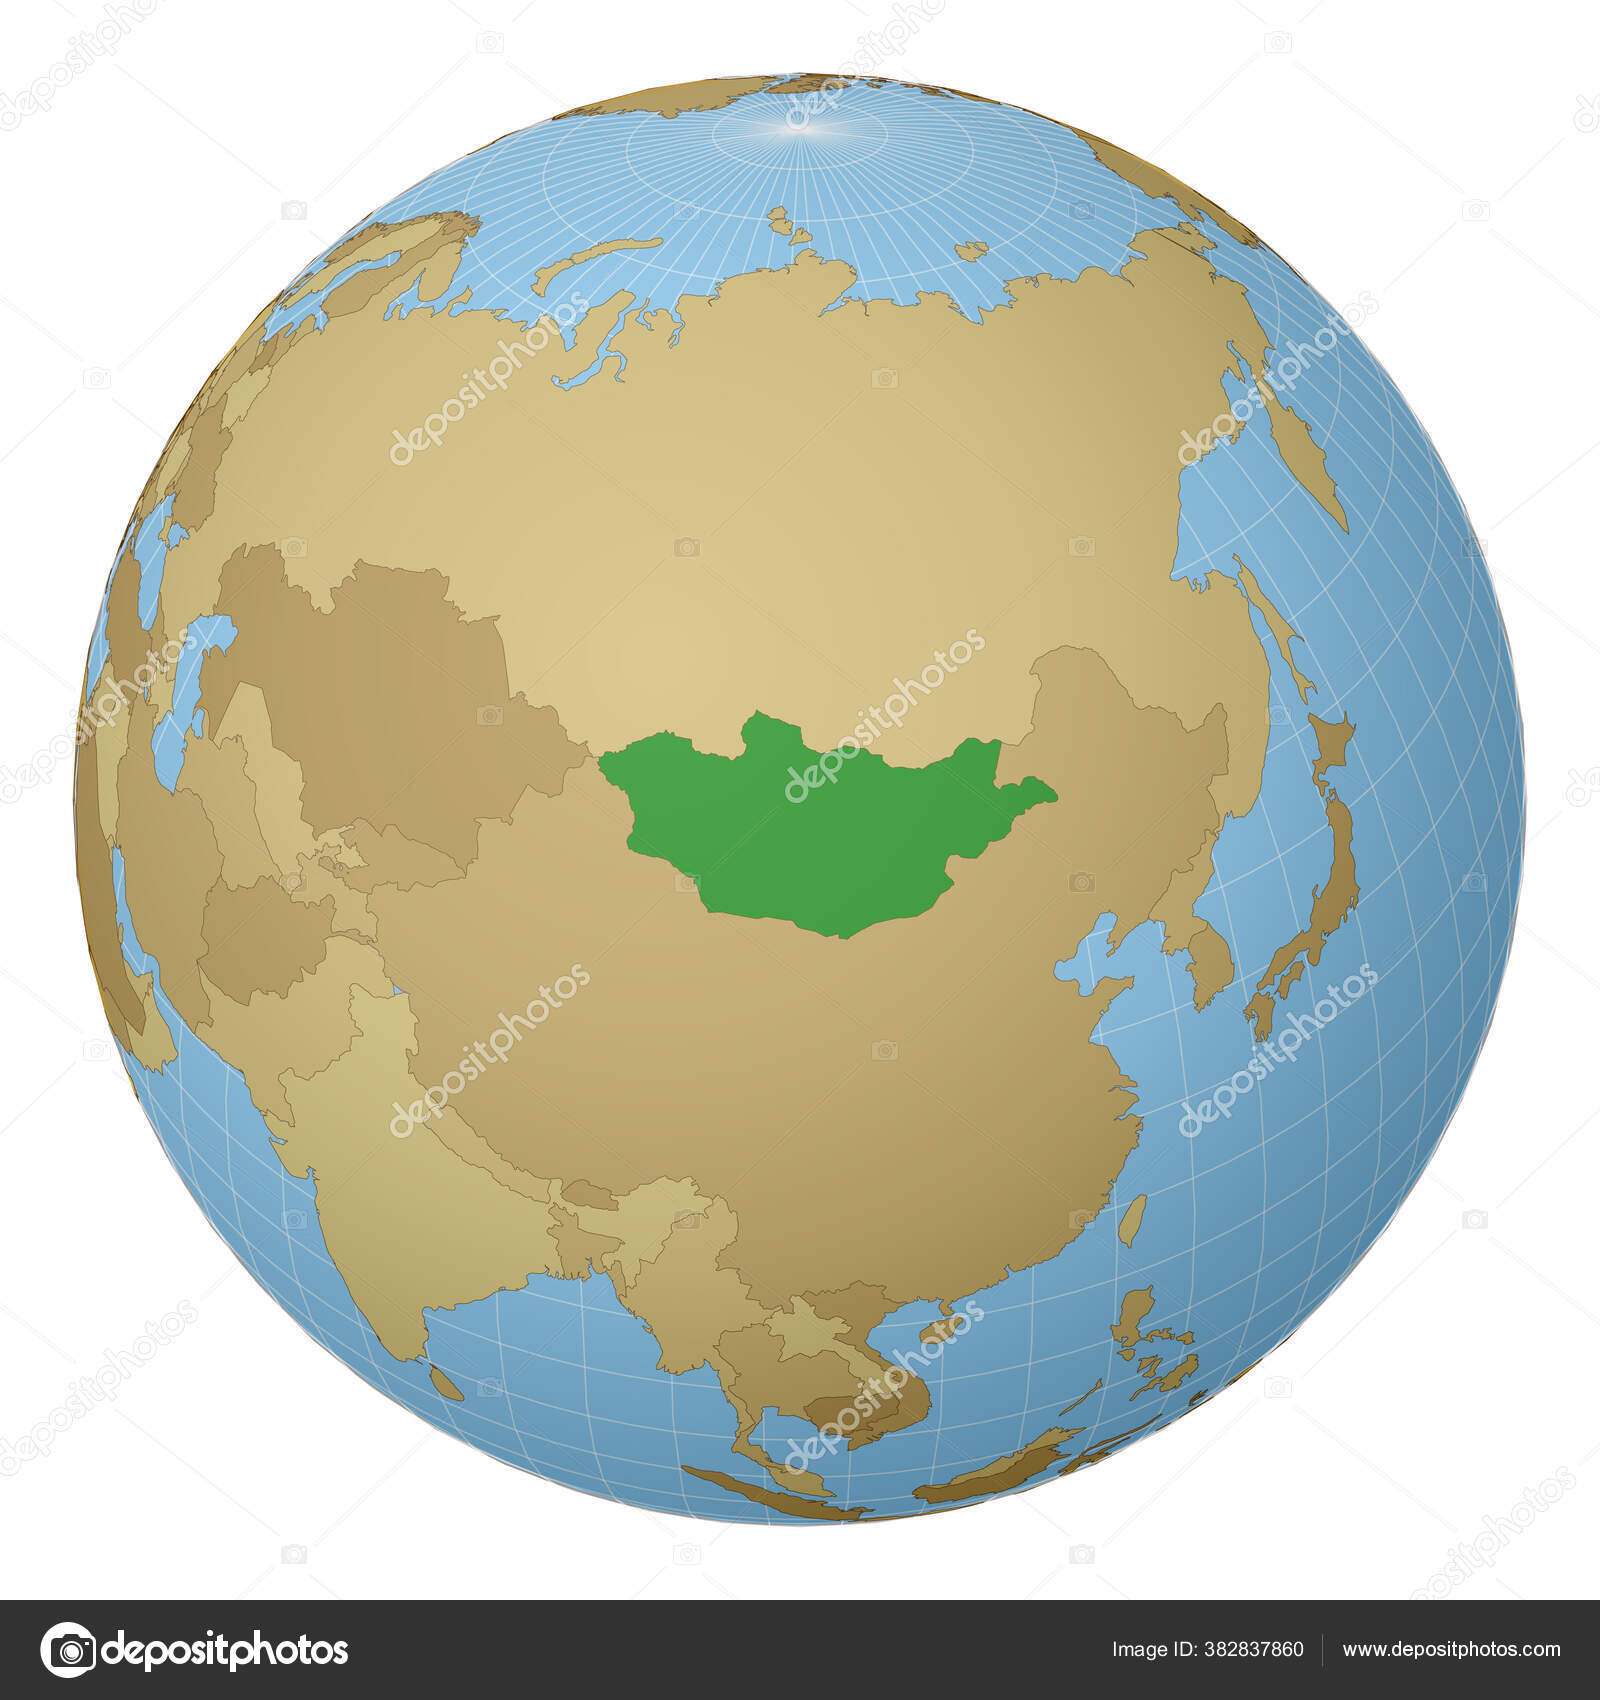 Globe Centered To Mongolia Country Highlighted With Green Color On World Map Satellite Projection Stock Vector C Gagarych 382837860